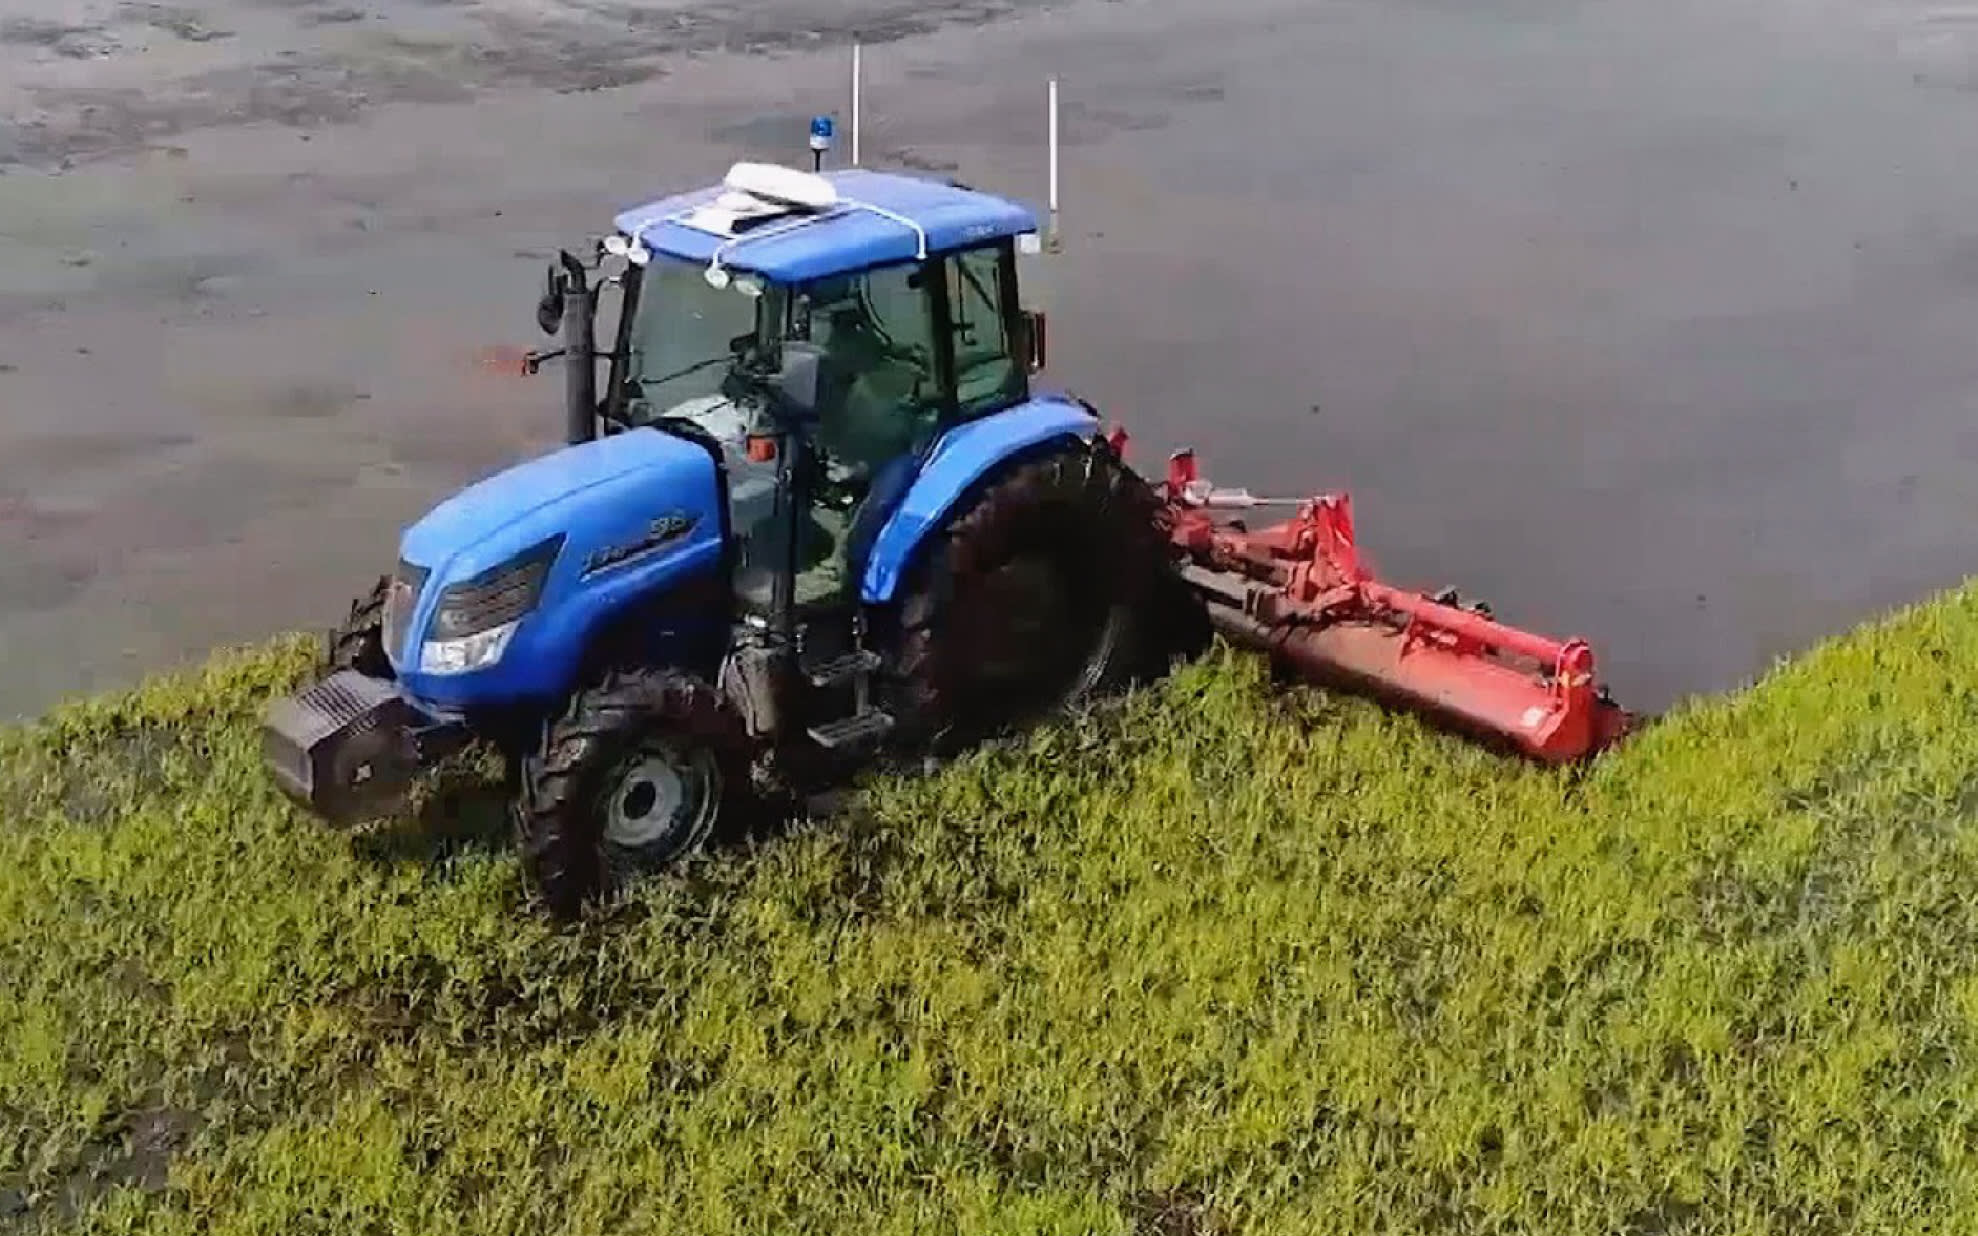 Japan looks to drones, self-driving tractors to lift rice